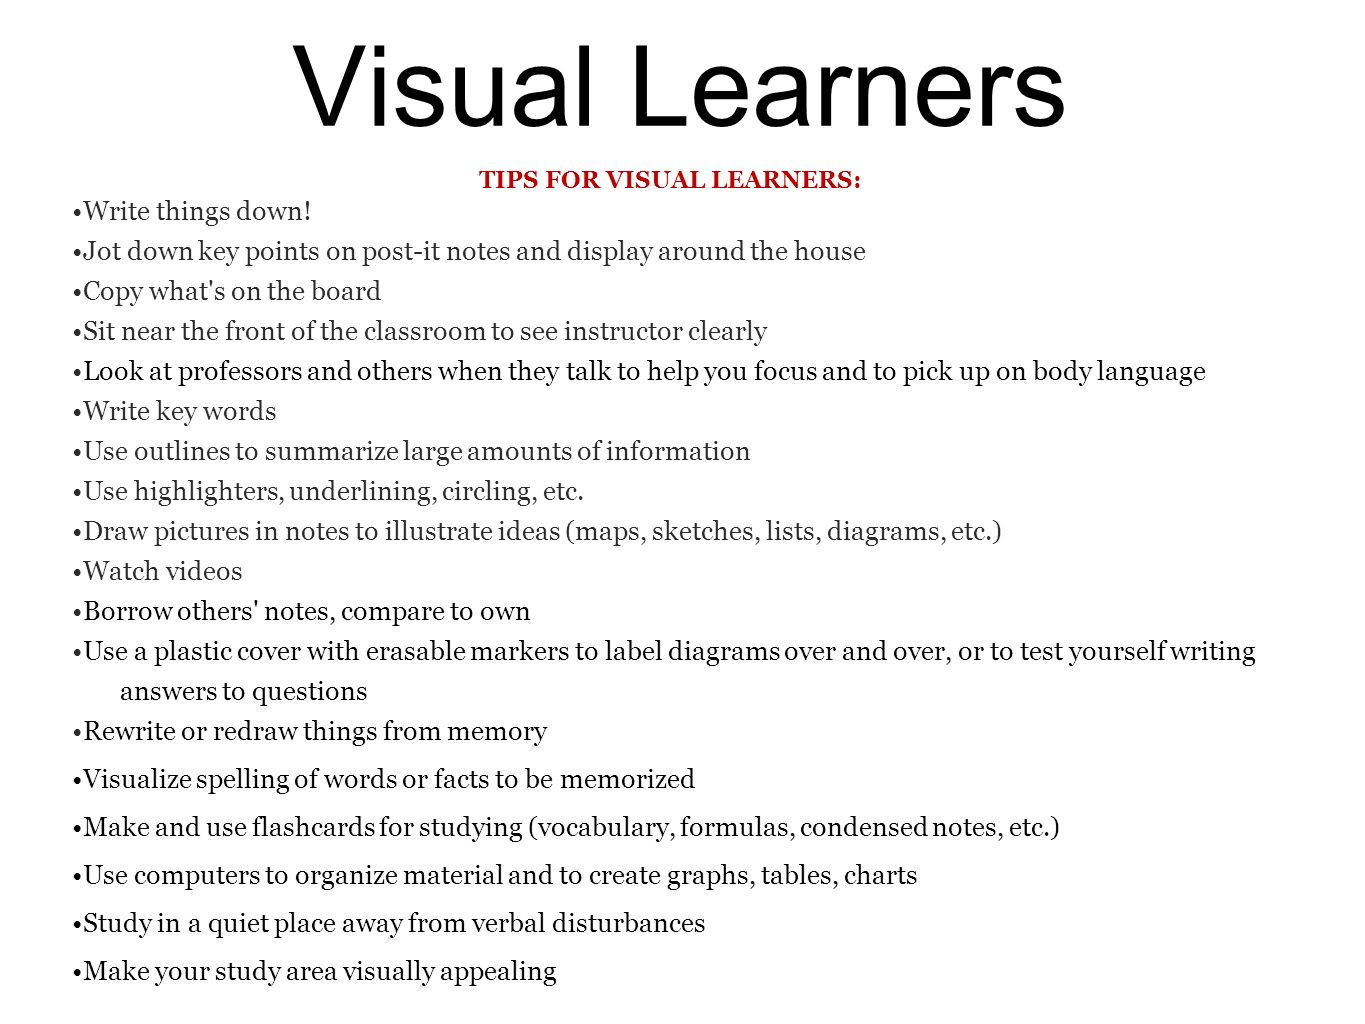 visual learning style essay Spanish: education and learning style essay textbook, online learning versus face-to-face classes, and any other factors that may contribute to making this course challenging for someone with your preferred ways of learning.